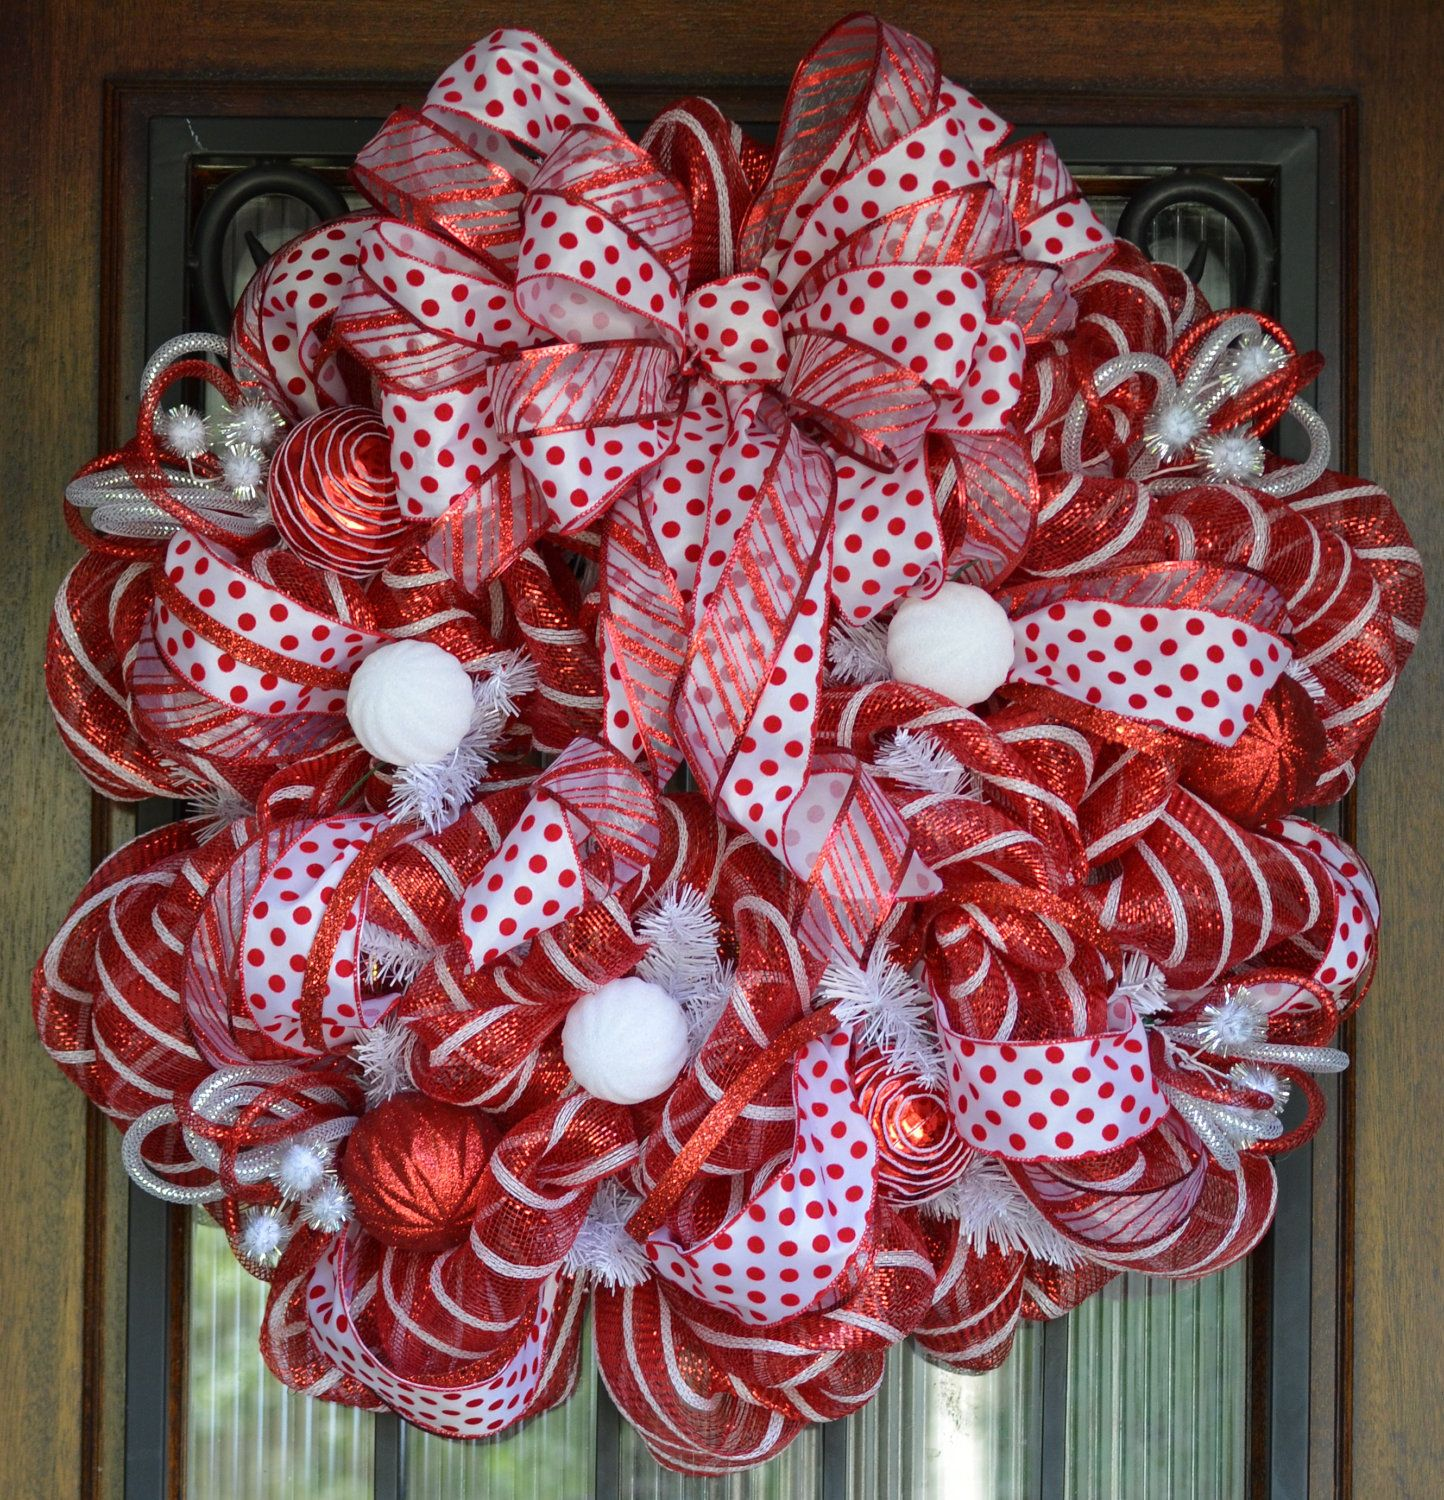 Mesh holiday wreath clipart clip royalty free download Image detail for -Red and White Christmas Deco Mesh Wreath ... clip royalty free download